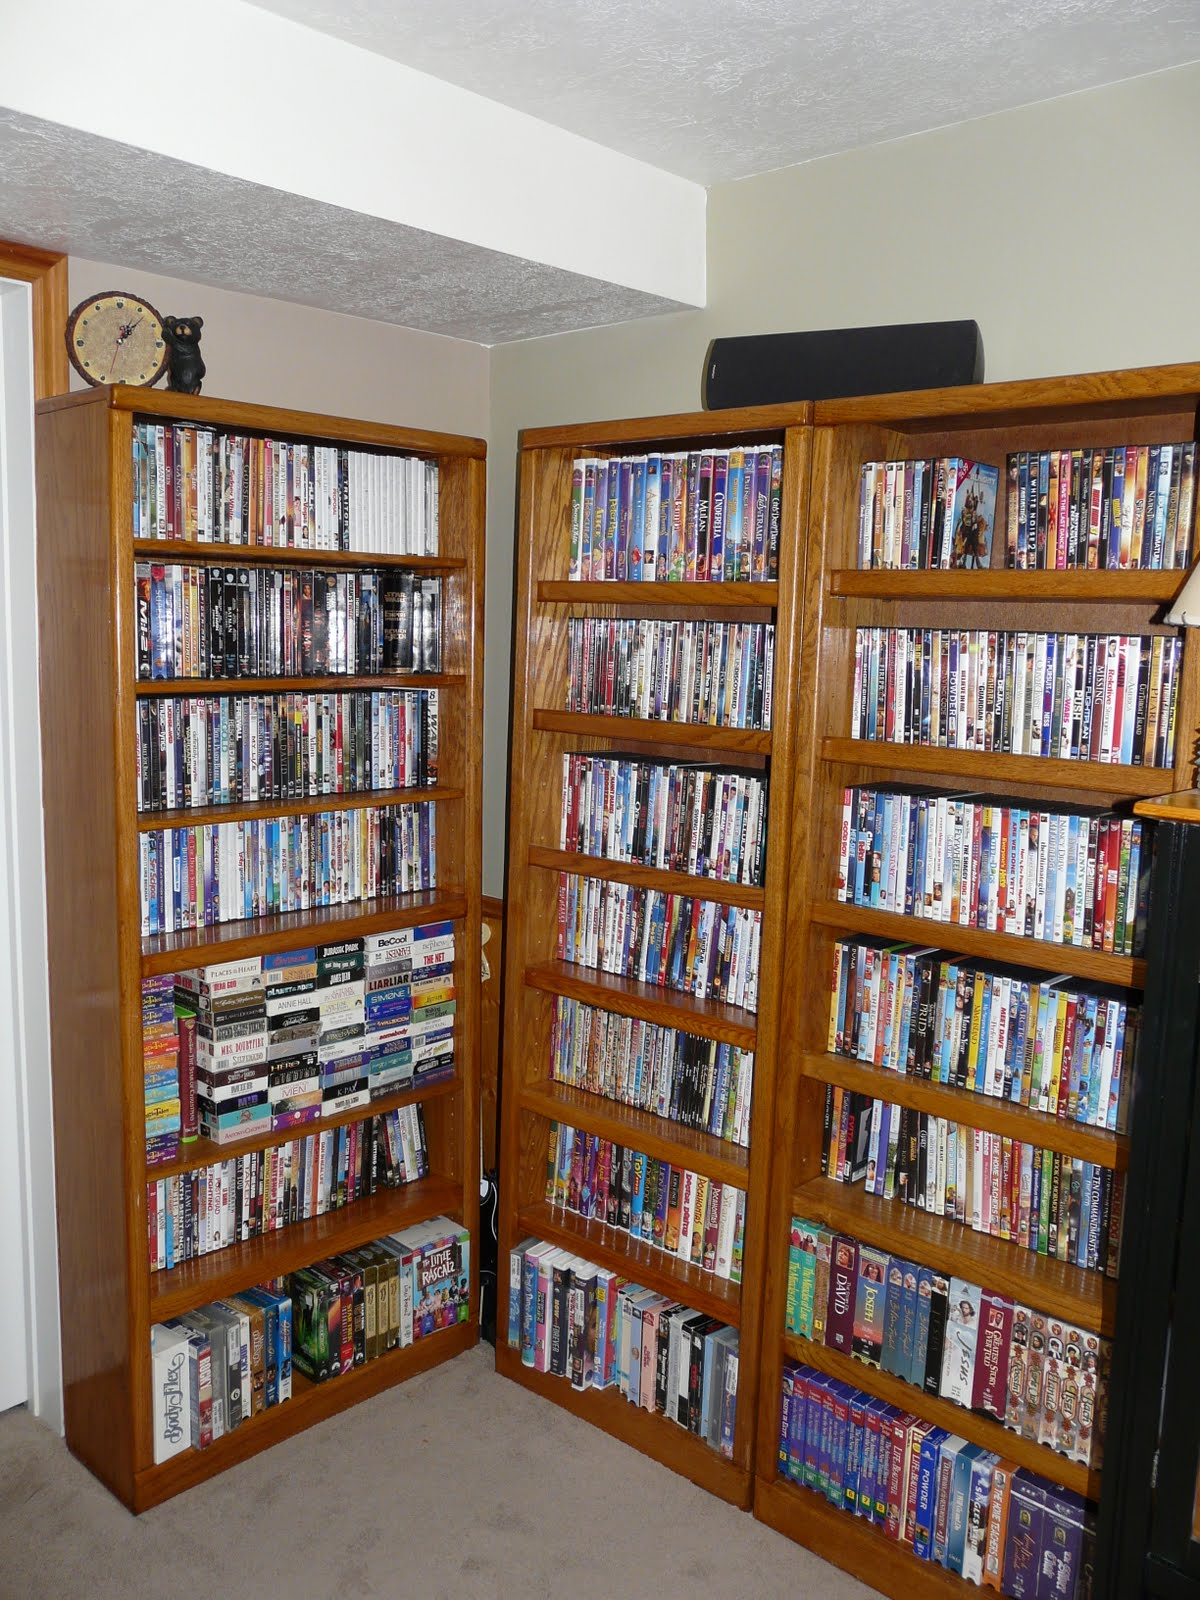 I Have Been Looking For A Bookshelf Few Years Now Two That Are The Same And Was Third To Hold All Our DVDs Videos